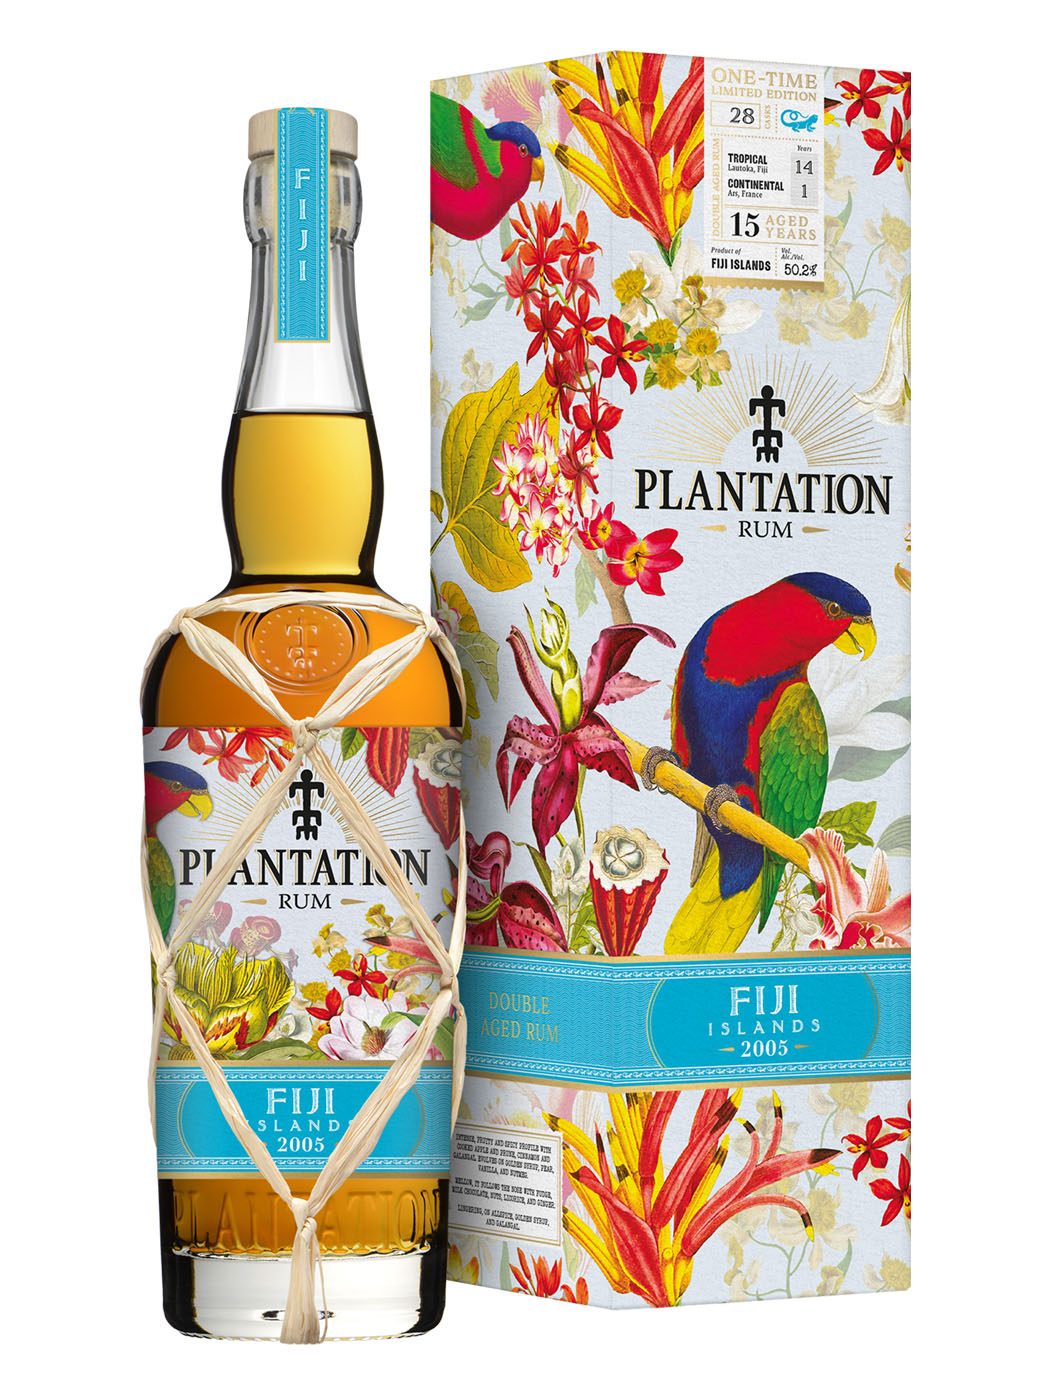 Plantation Rum Fiji 2005 ONE TIME Edition